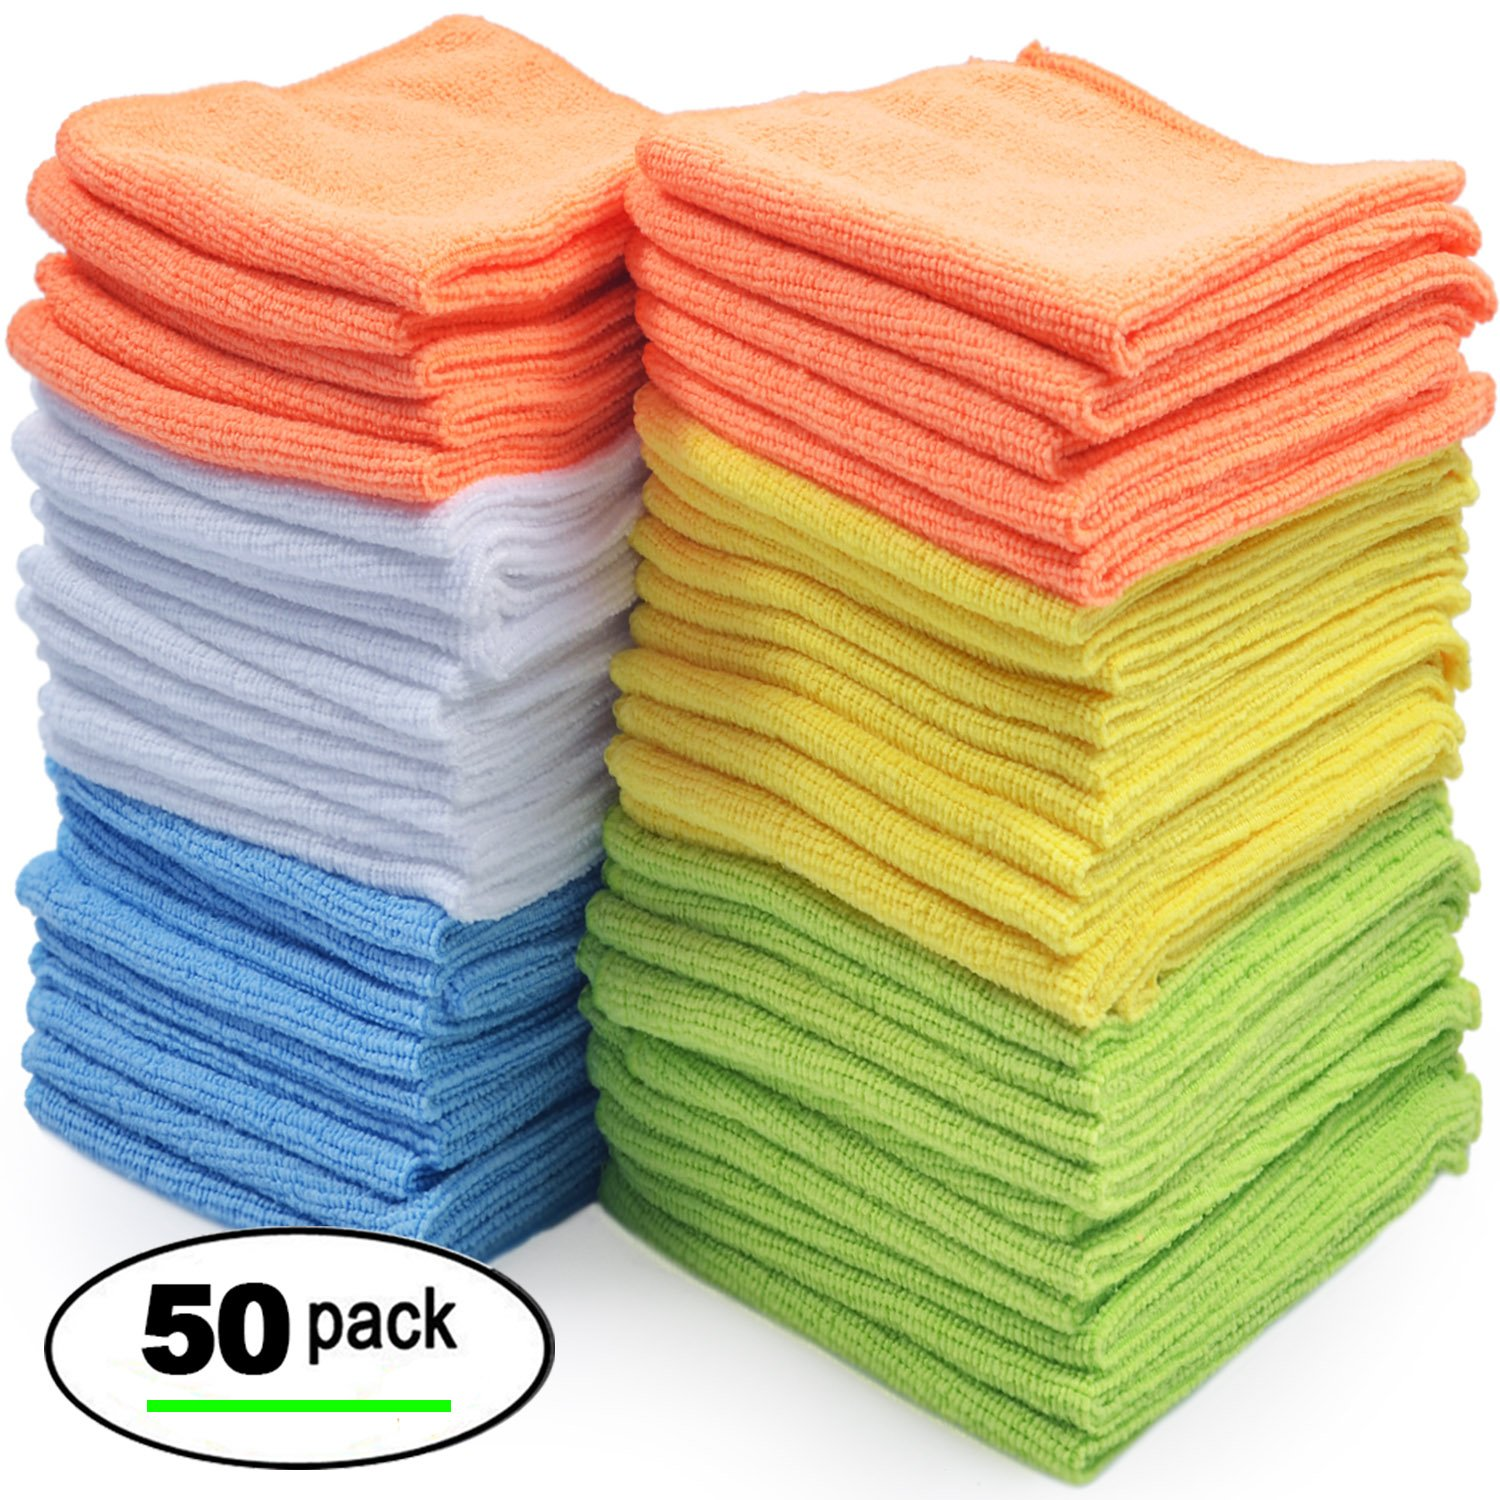 Microfiber Cloth Manufacturers Uk: Best Microfiber Cleaning Cloth, Pack Of 50 689988840084